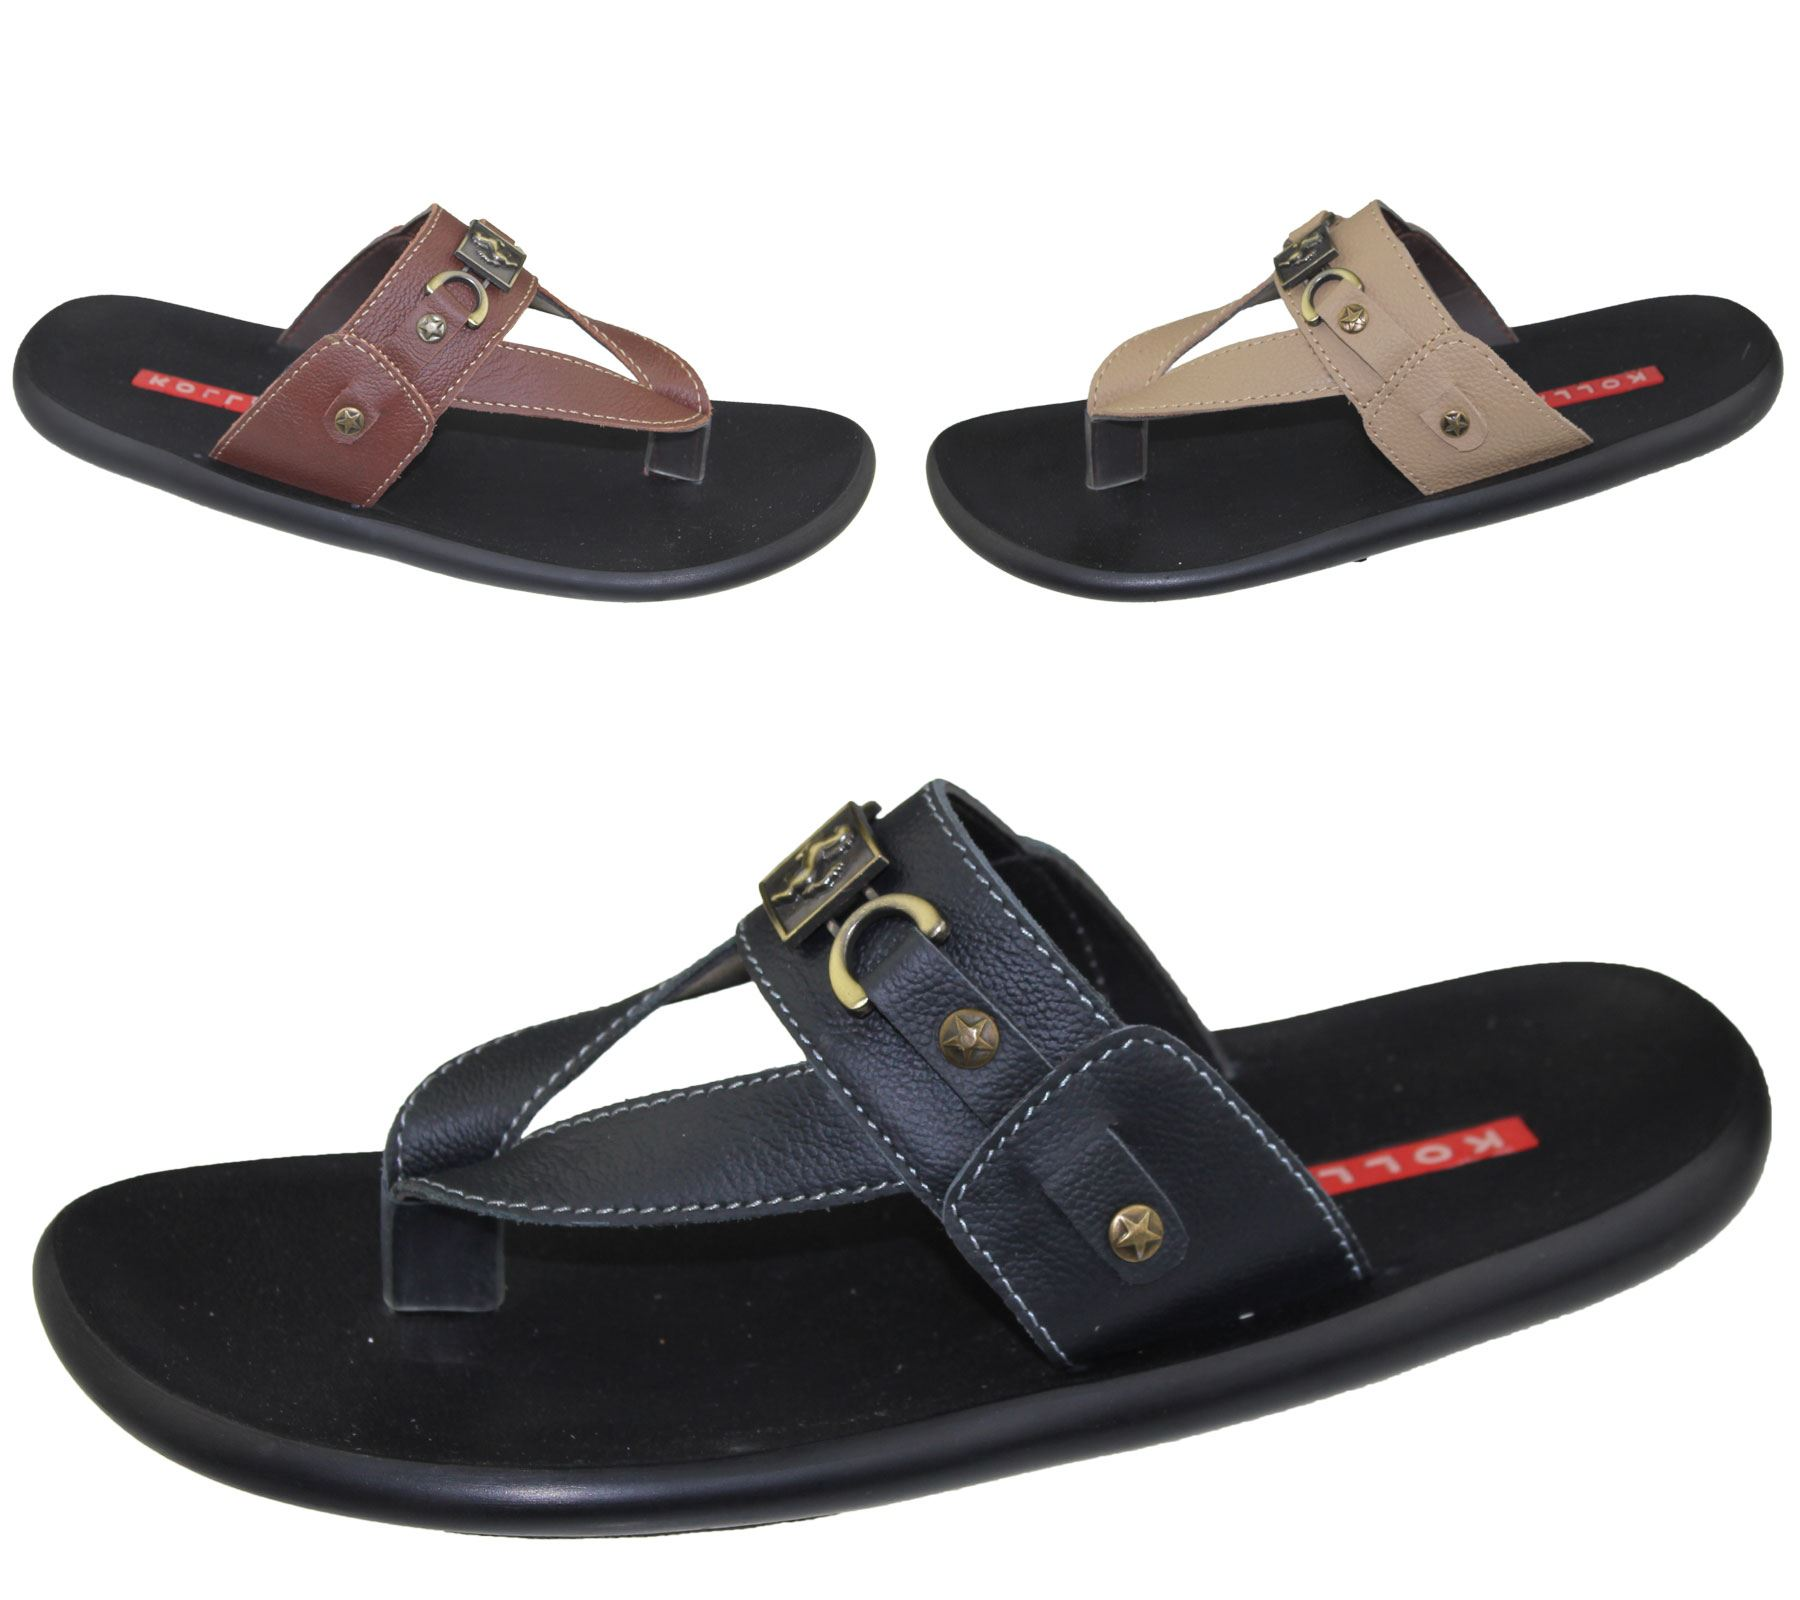 c7a2c8776 Mens Slip On Slippers Beach Walking Summer Casual Fashion Flip Flop Sandal  Shoes